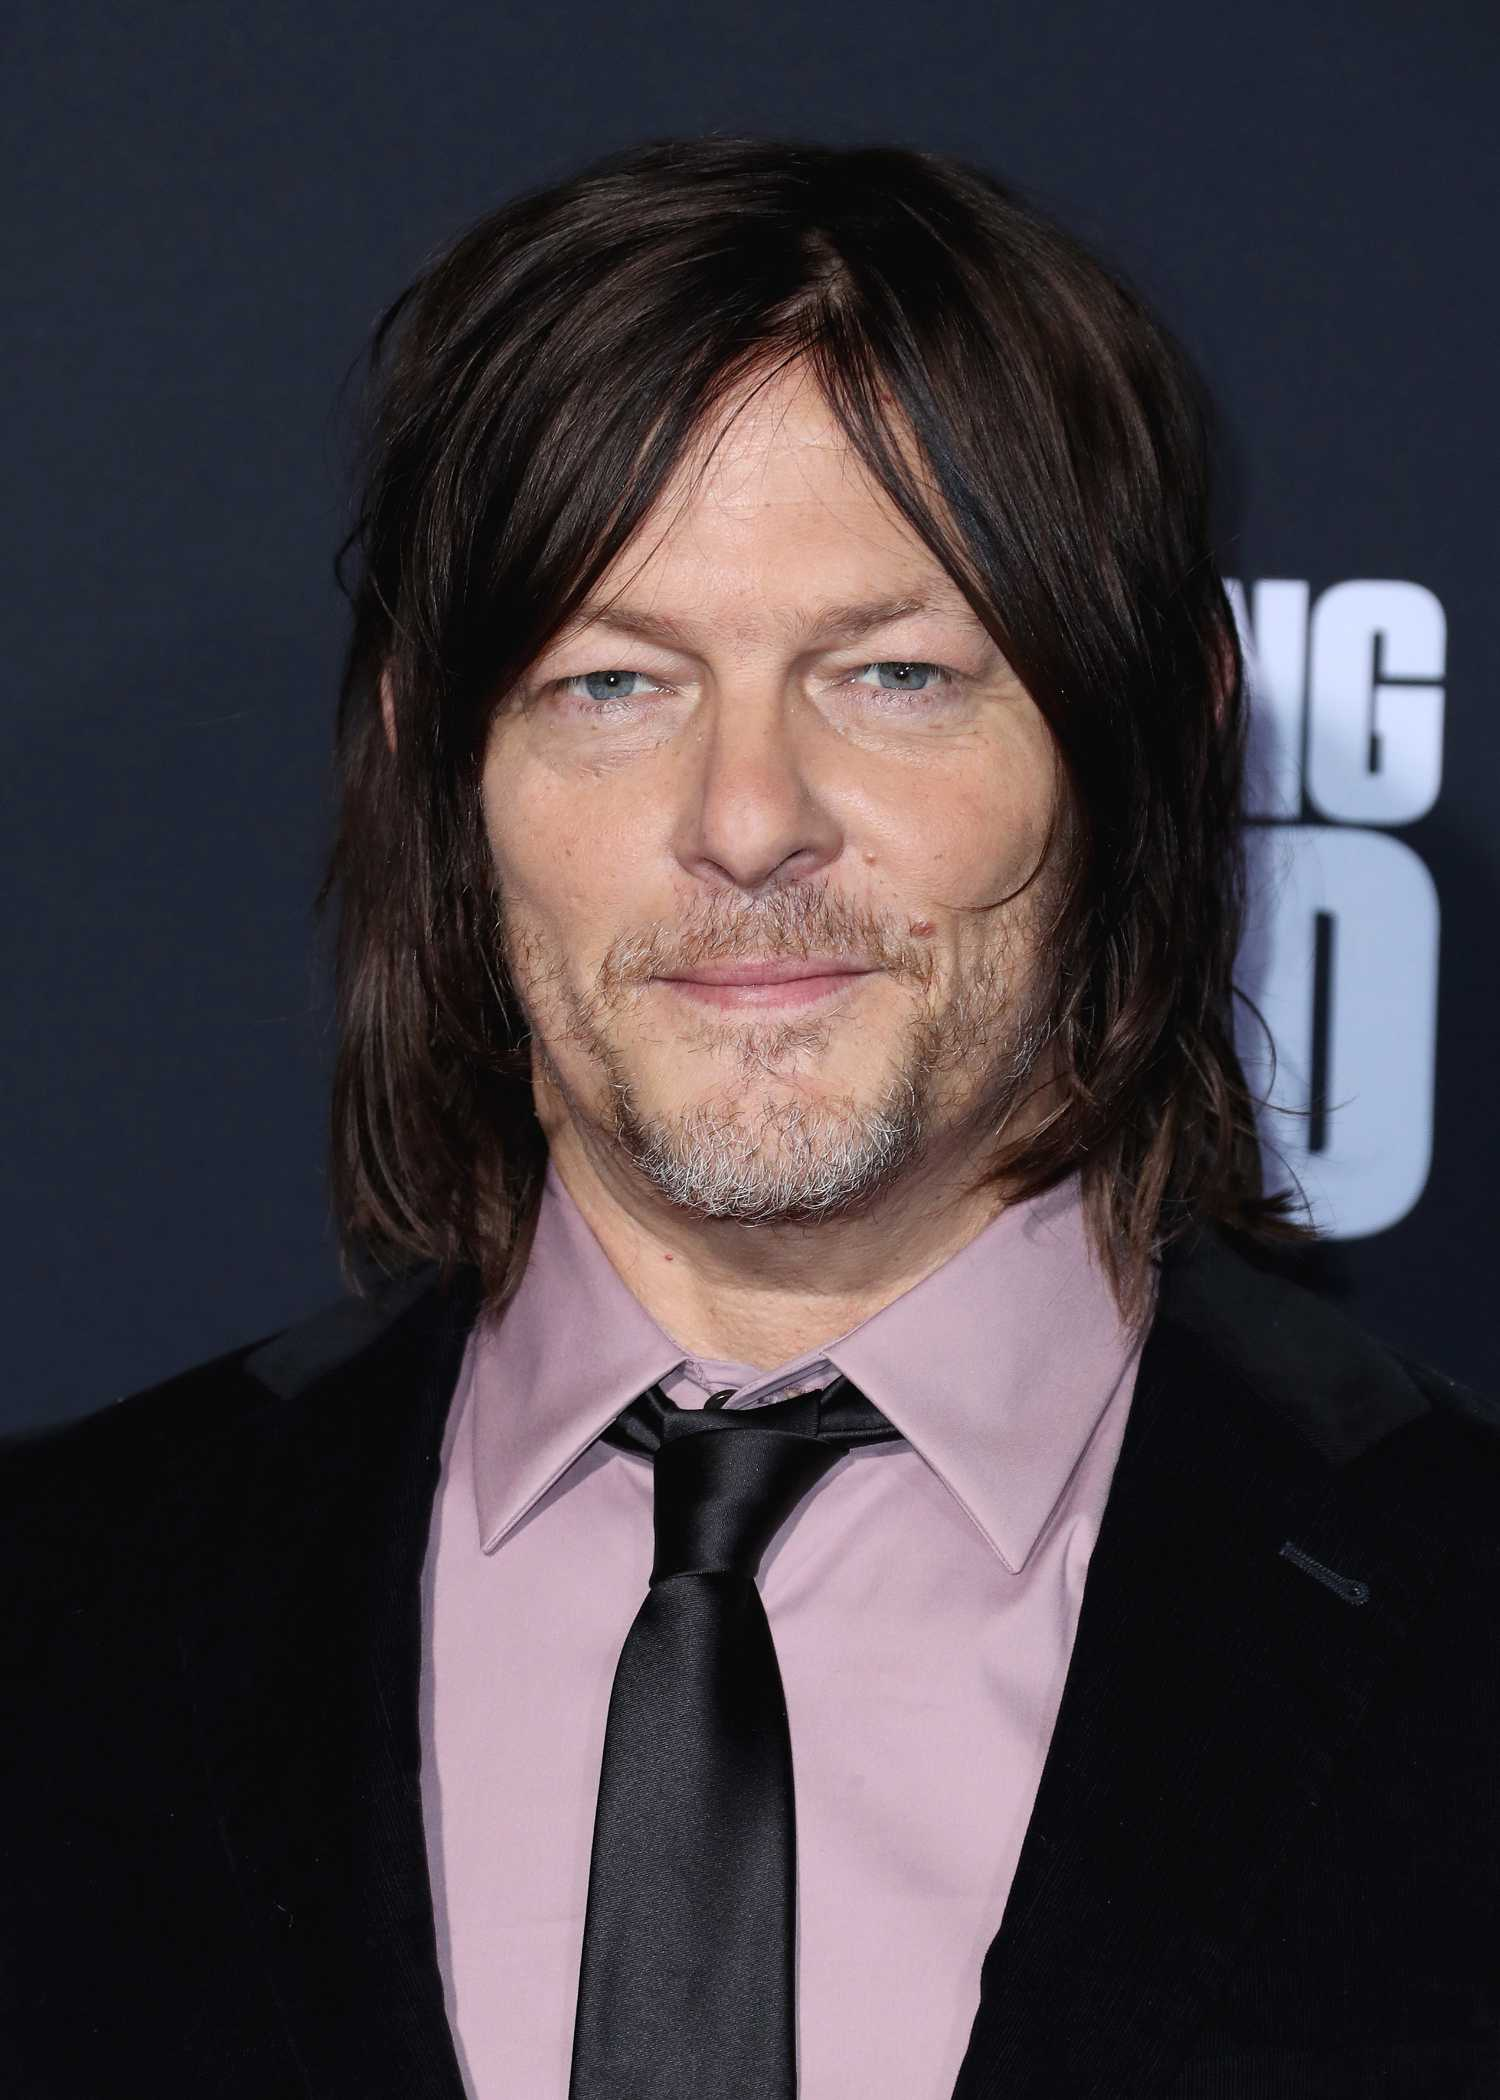 Norman Reedus Attends The Walking Dead Premiere and Party